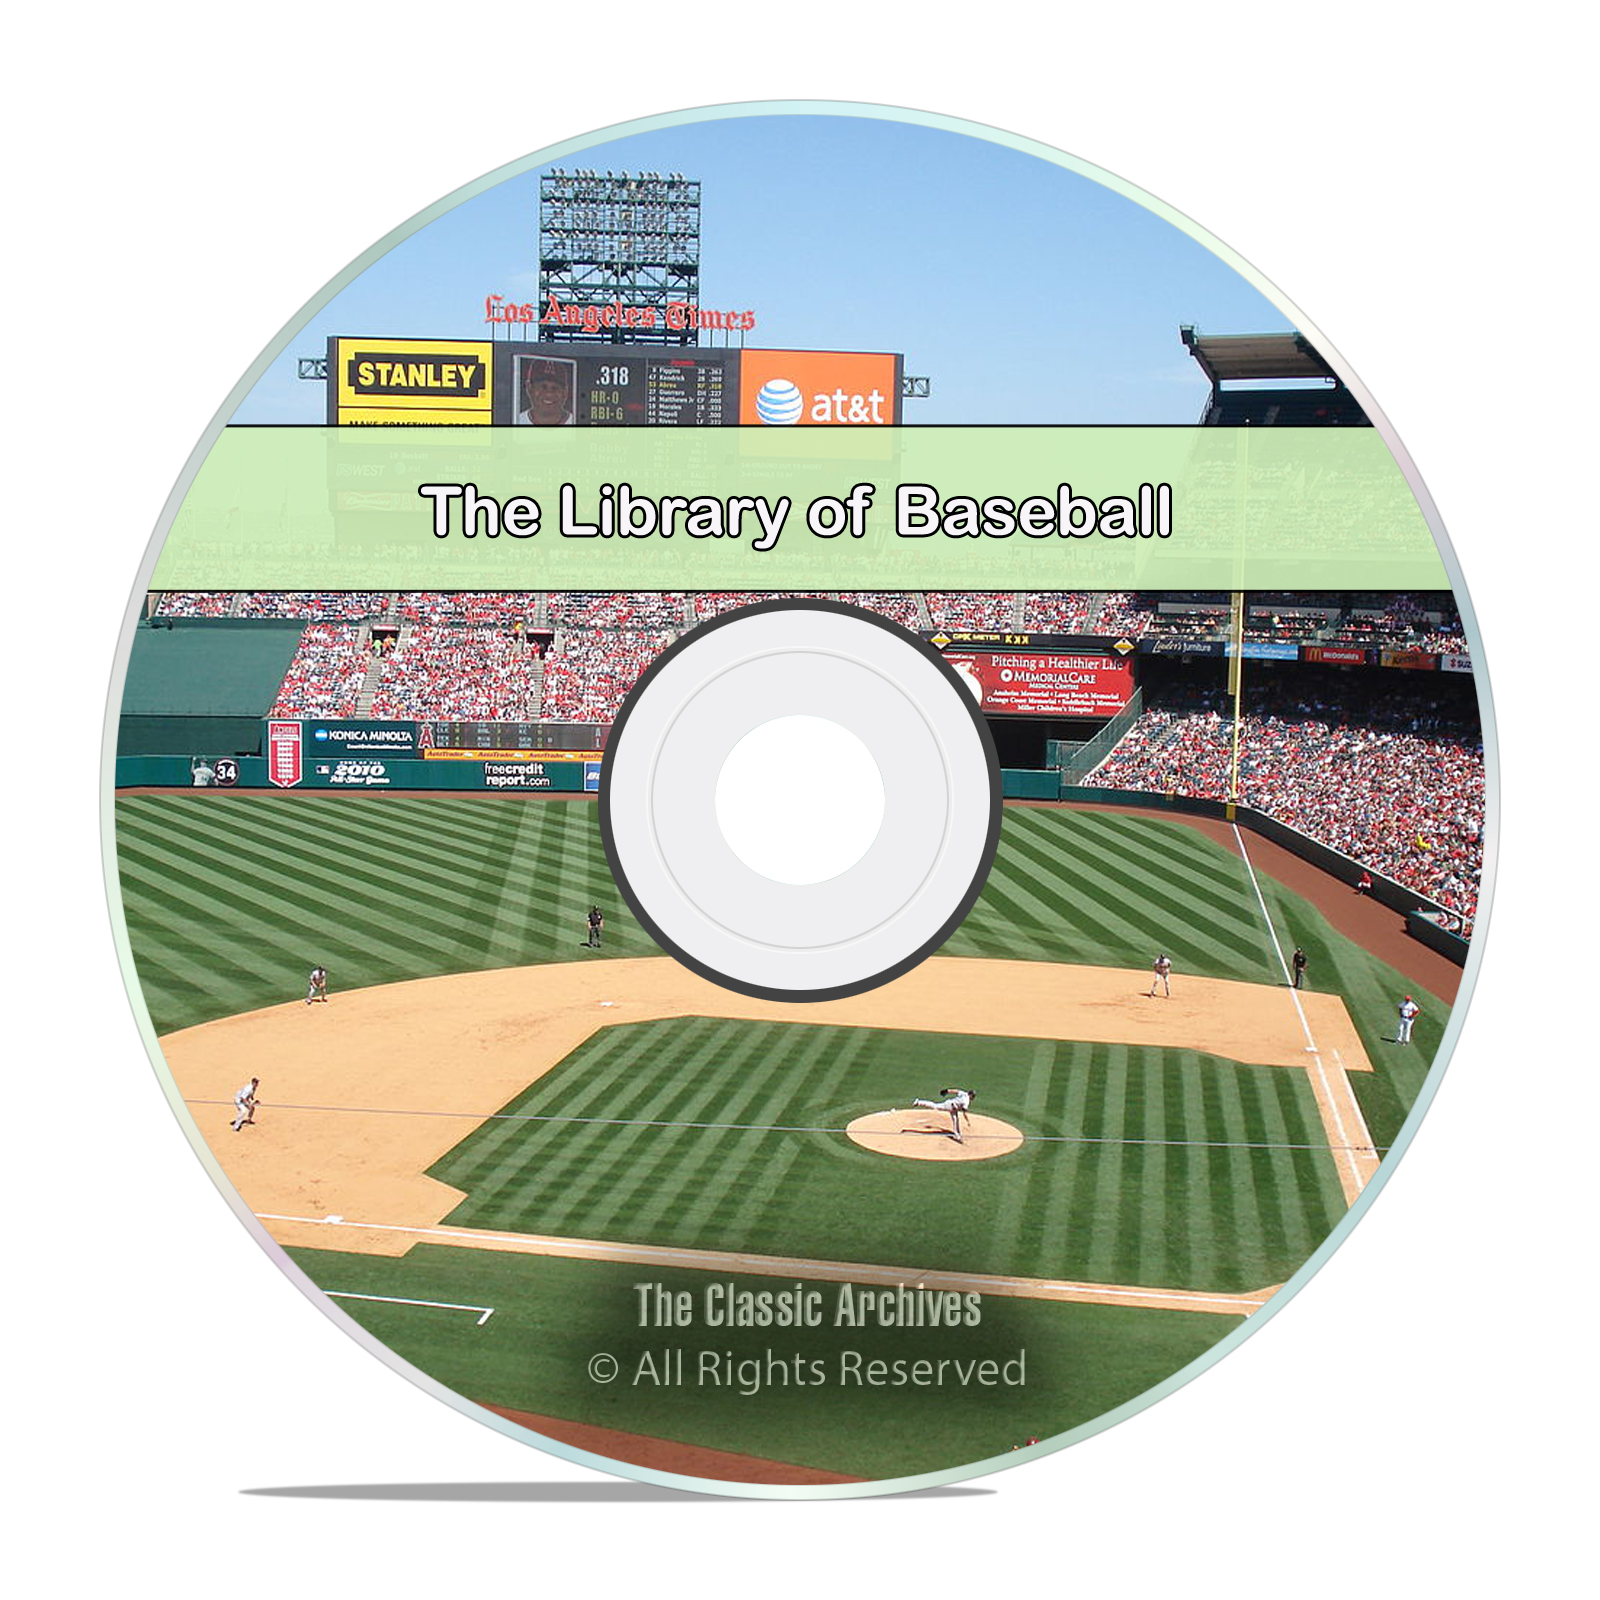 Complete Vintage Library of Baseball, 118 Books Spalding Guides History DVD